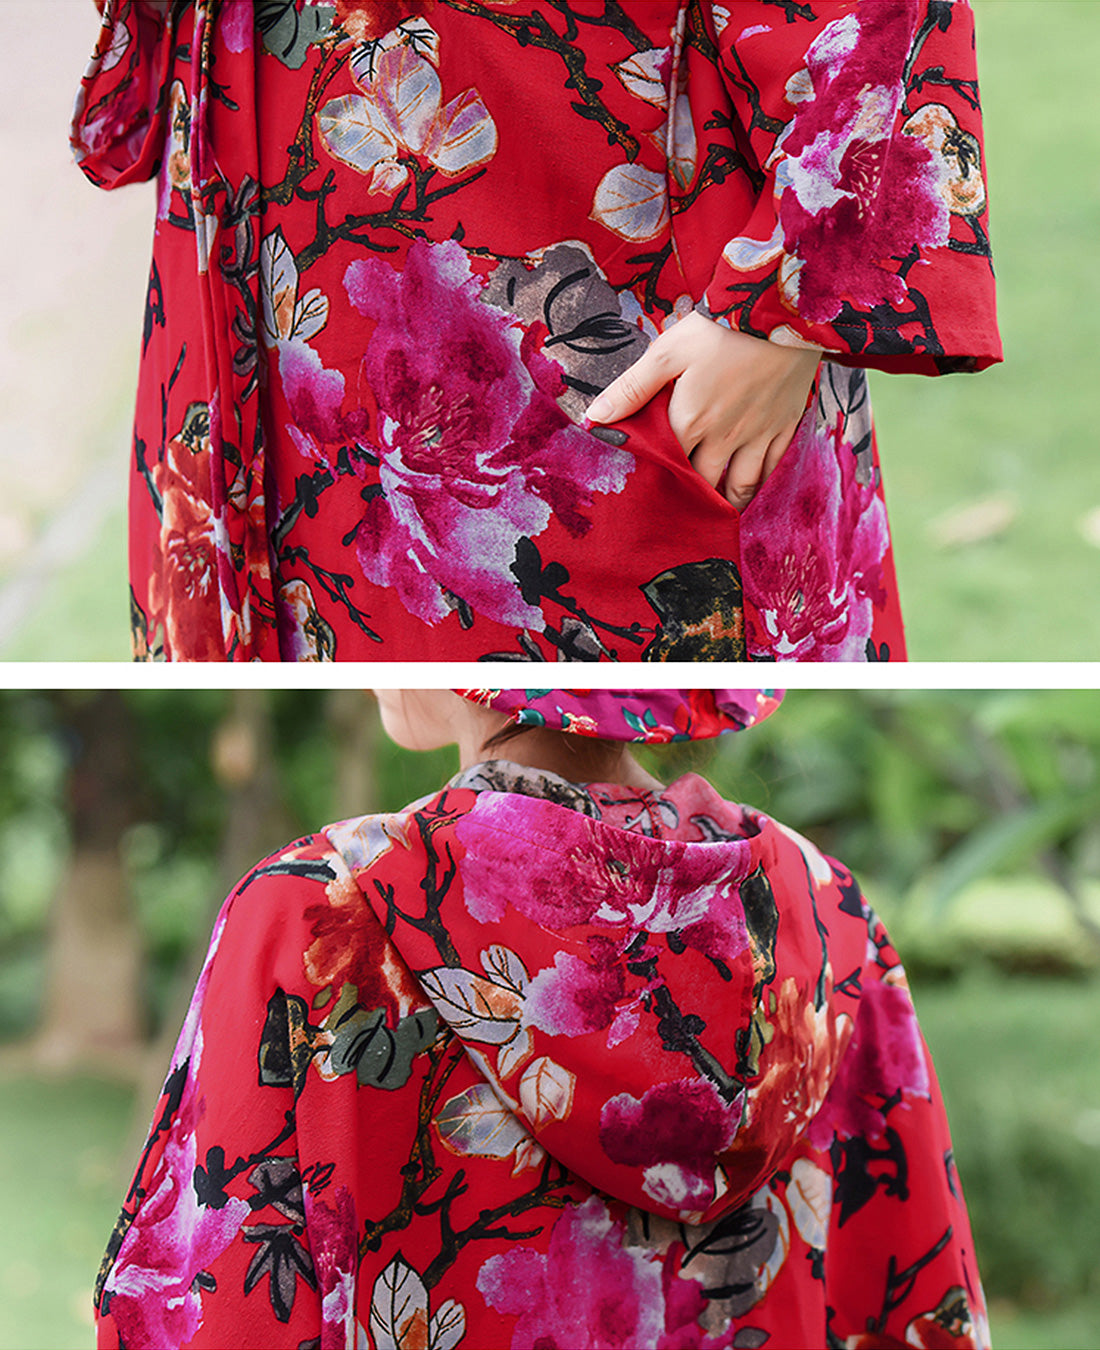 Floral Printed Hooded Red Cape Coat Details 2